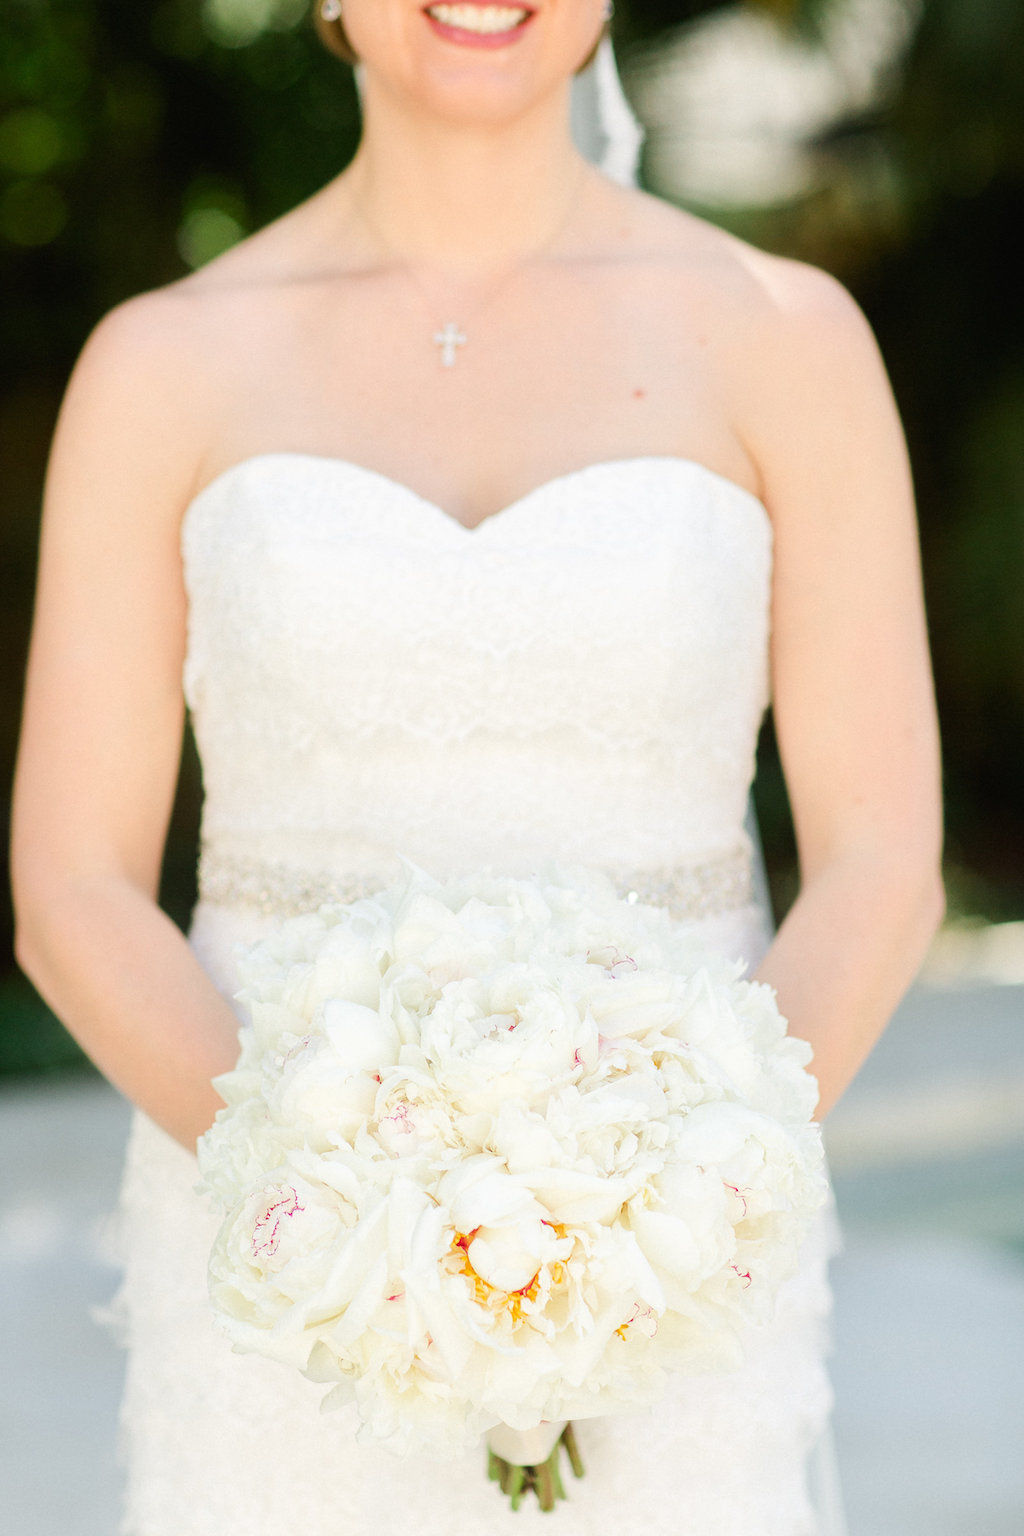 Outdoor Bridal Portrait in Strapless Wedding Dress with White Peony Bouquet   Tampa Bay Wedding Photographer Ailyn La Torre Photography